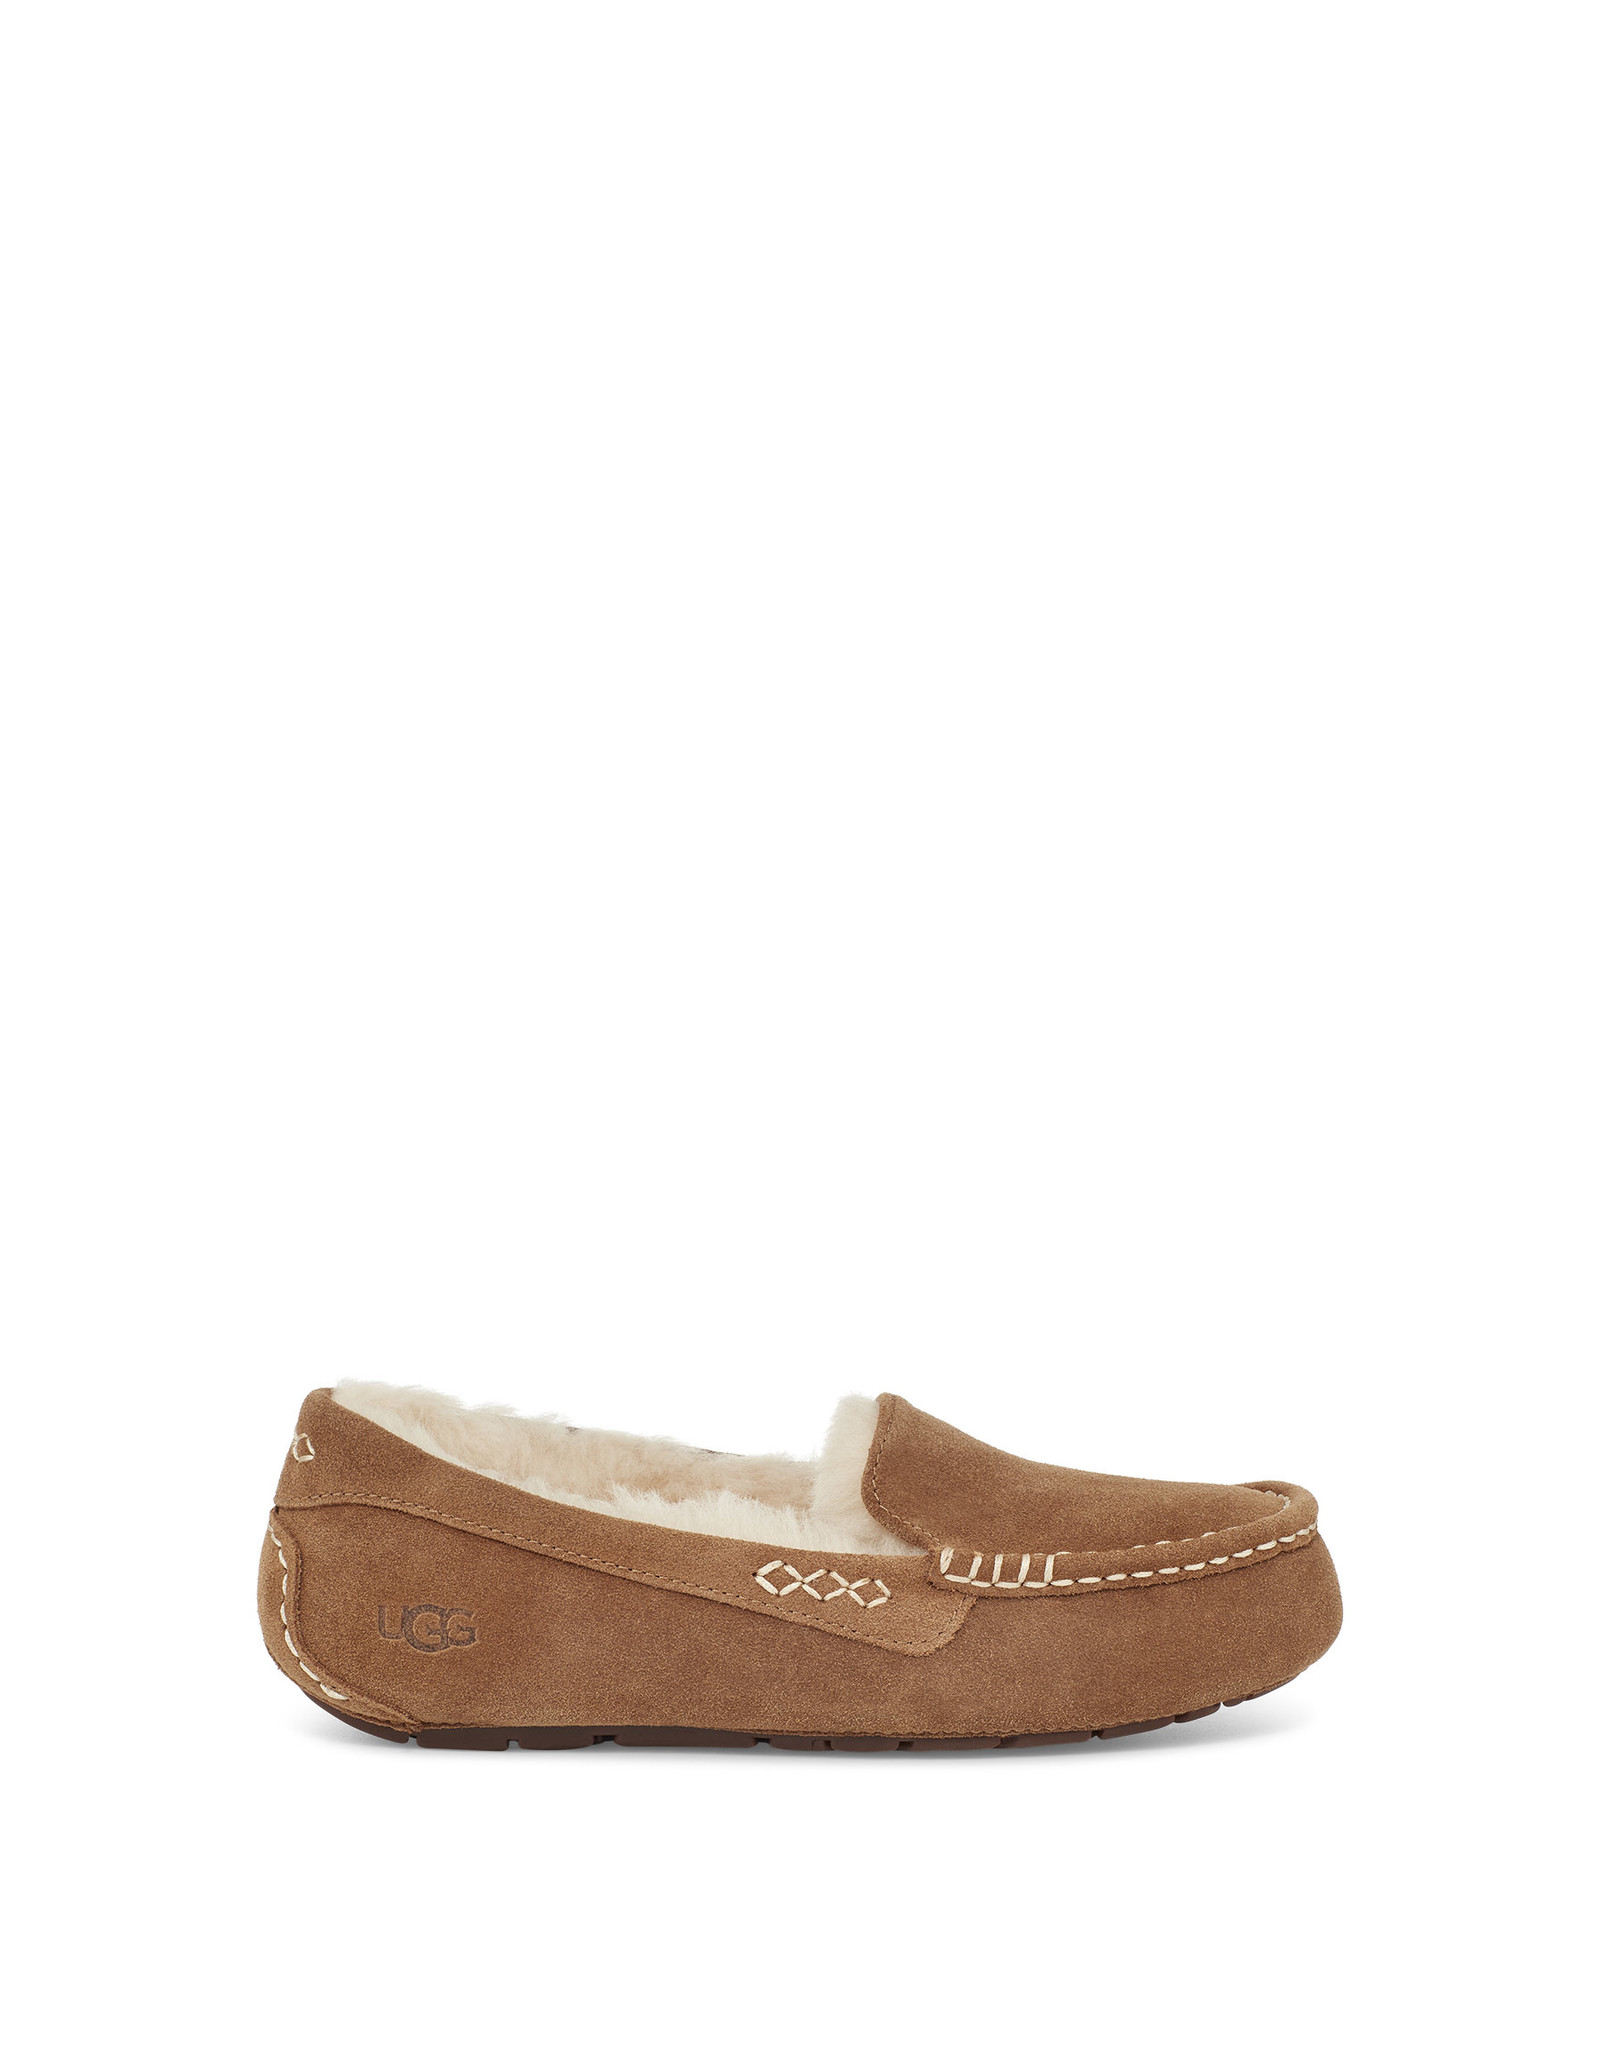 UGG WOMEN'S ANSLEY SLIPPER-CHESTNUT